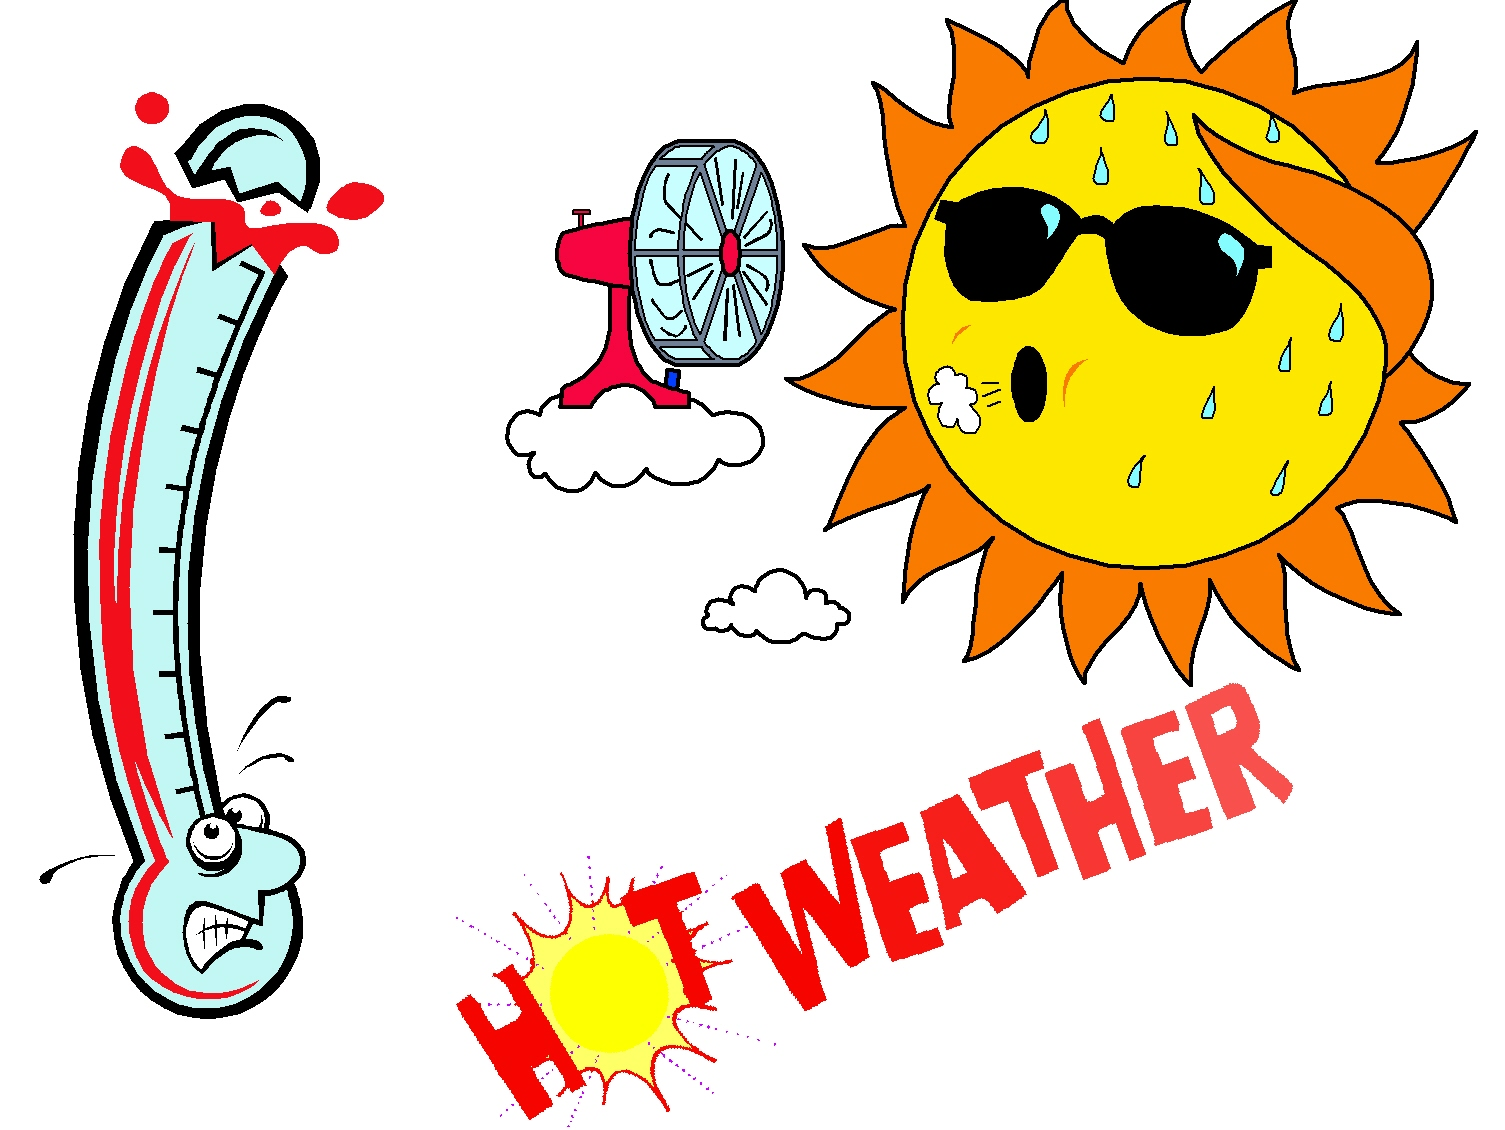 What Is The Usual Summer High Temperature Where You Live 92 To 95